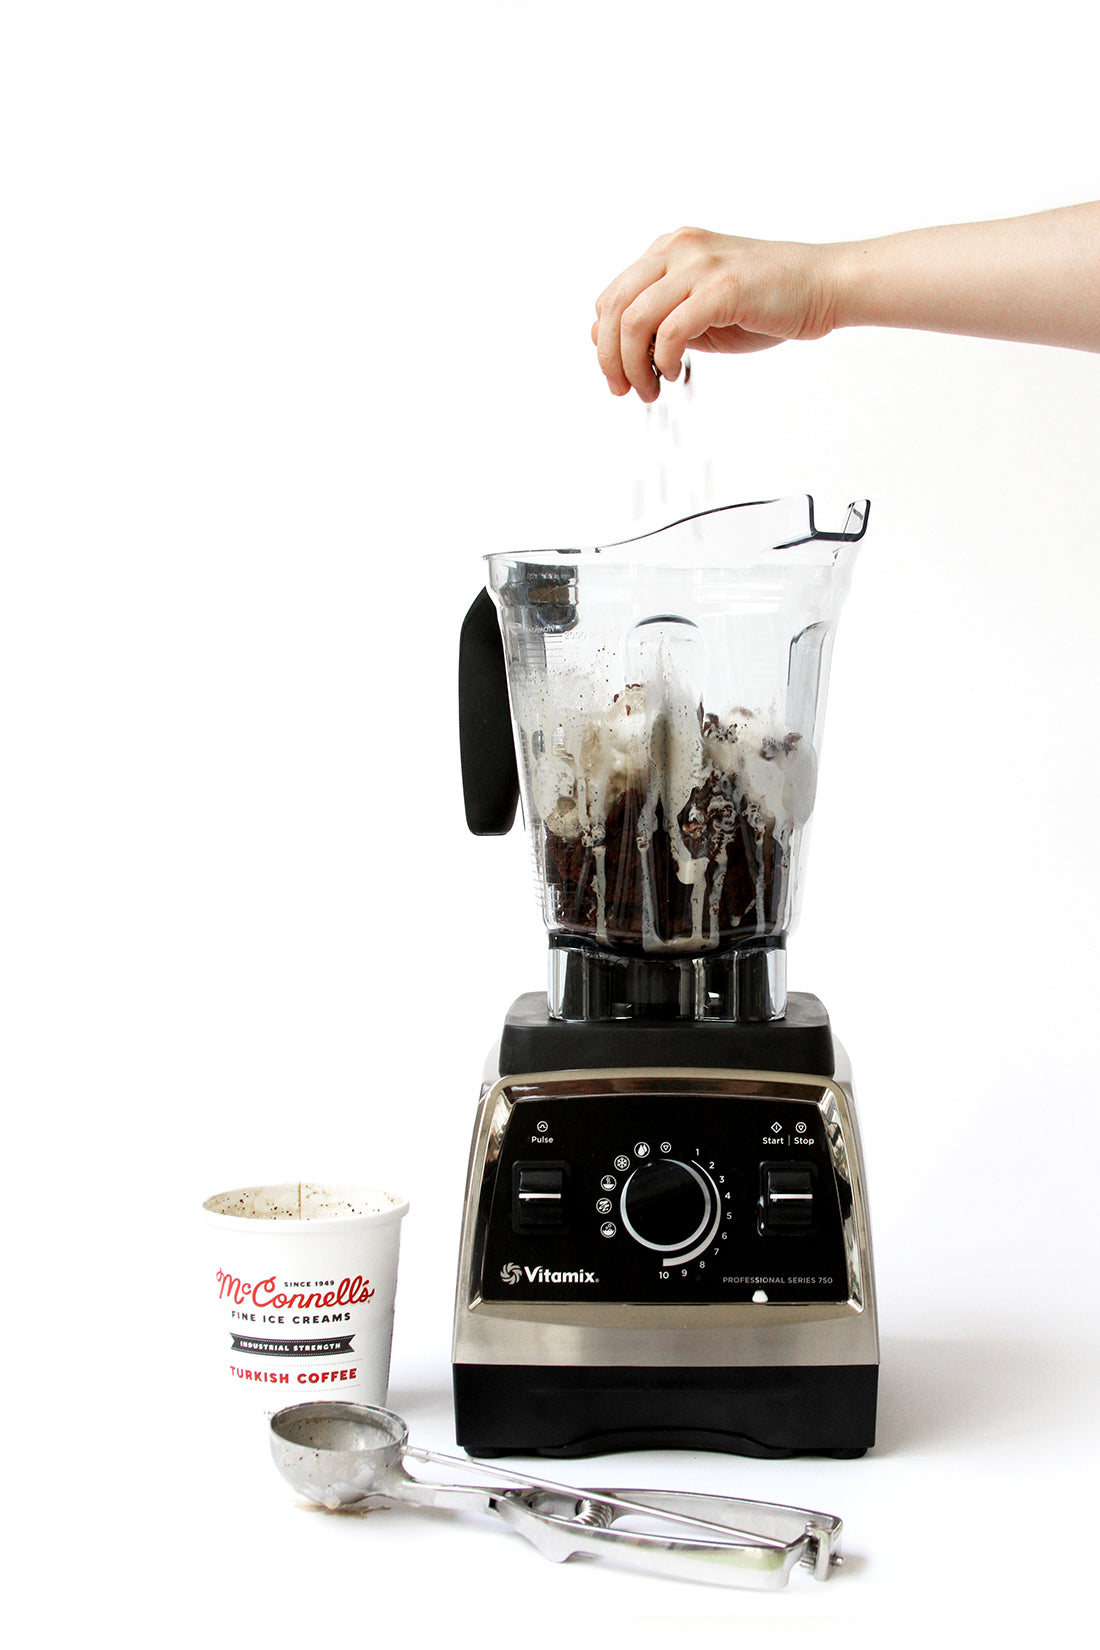 Image of a blender with ingredients for Miss Jones Baking Co Coffee Break Shake next to an ice cream scoop and a pint of McConnell's Fine Ice Cream